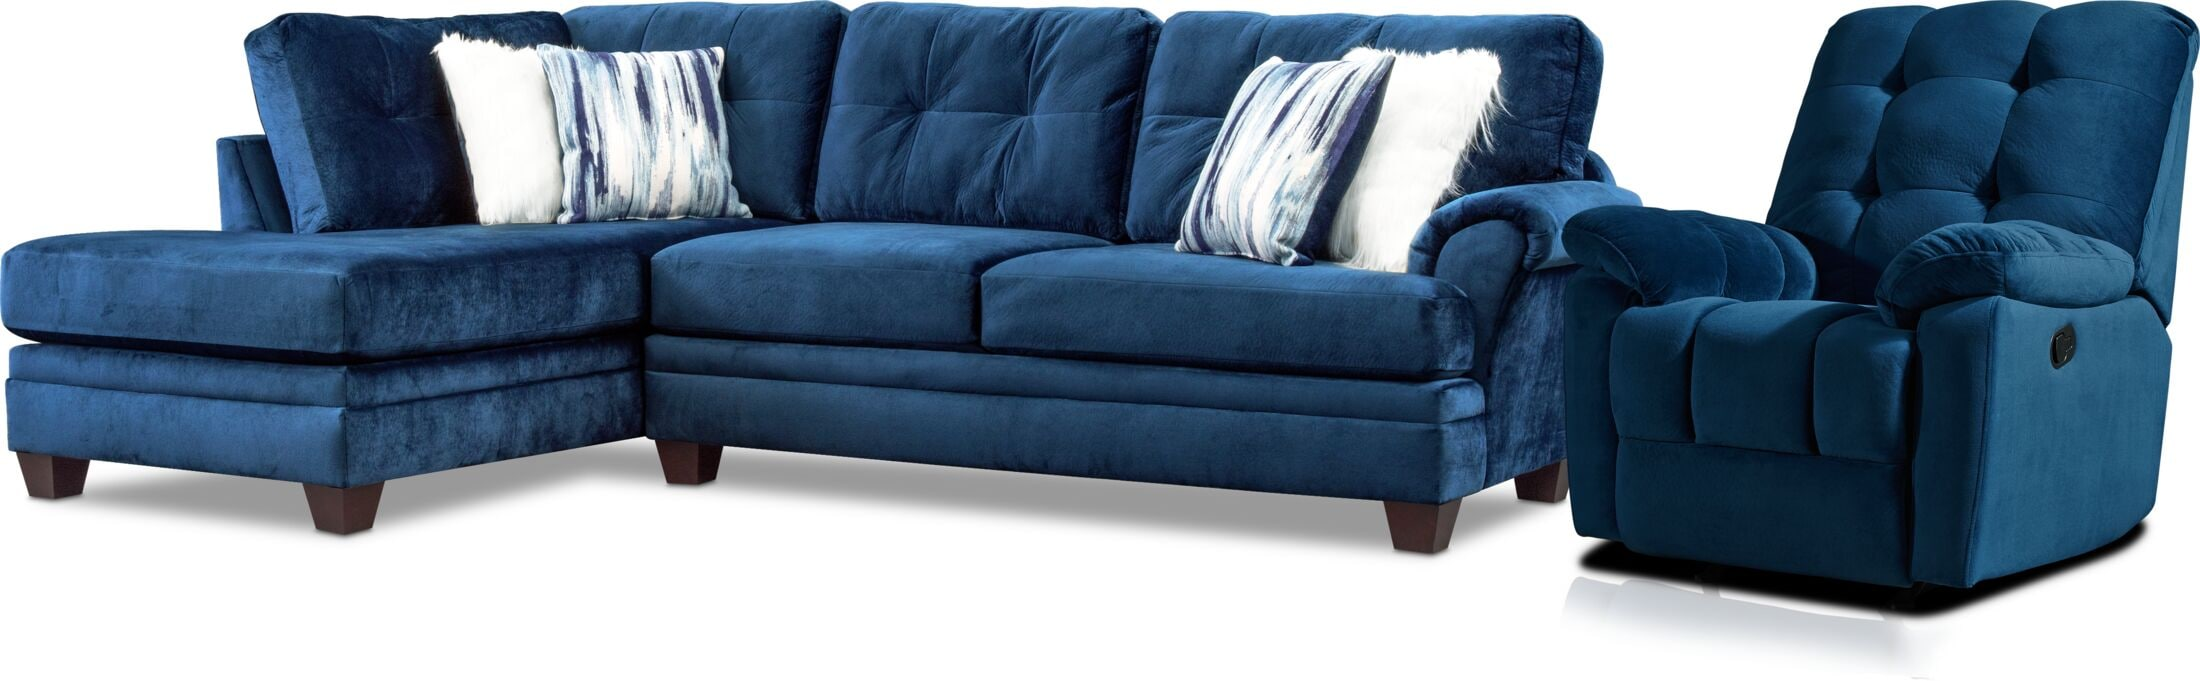 Living Room Furniture - Cordelle 2-Piece Sectional and Manual Recliner